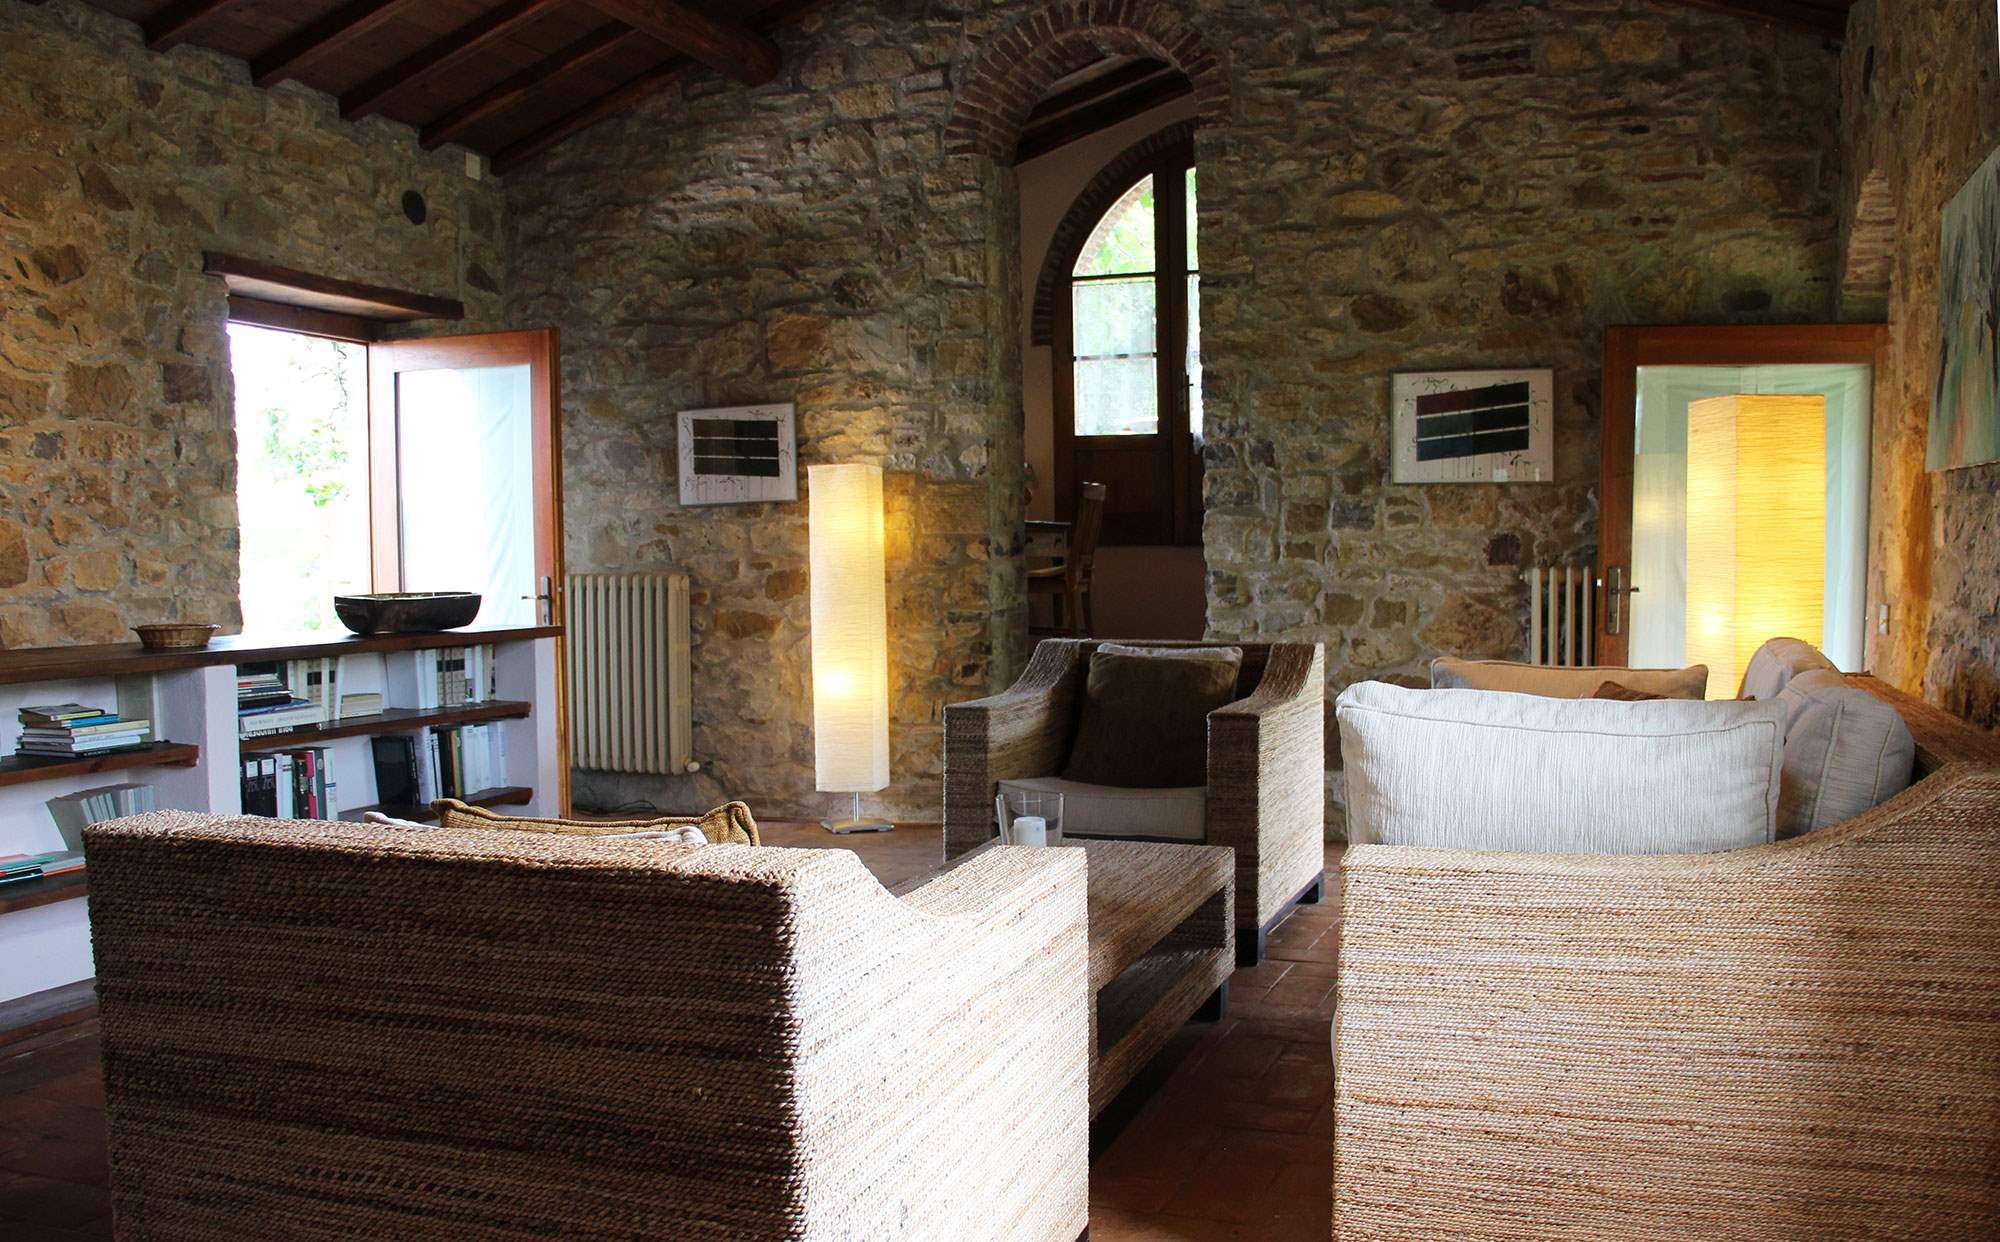 Villa Giacinto, 6 Bedroom rate, 6 bedroom villa in Chianti & Countryside, Tuscany Photo #4